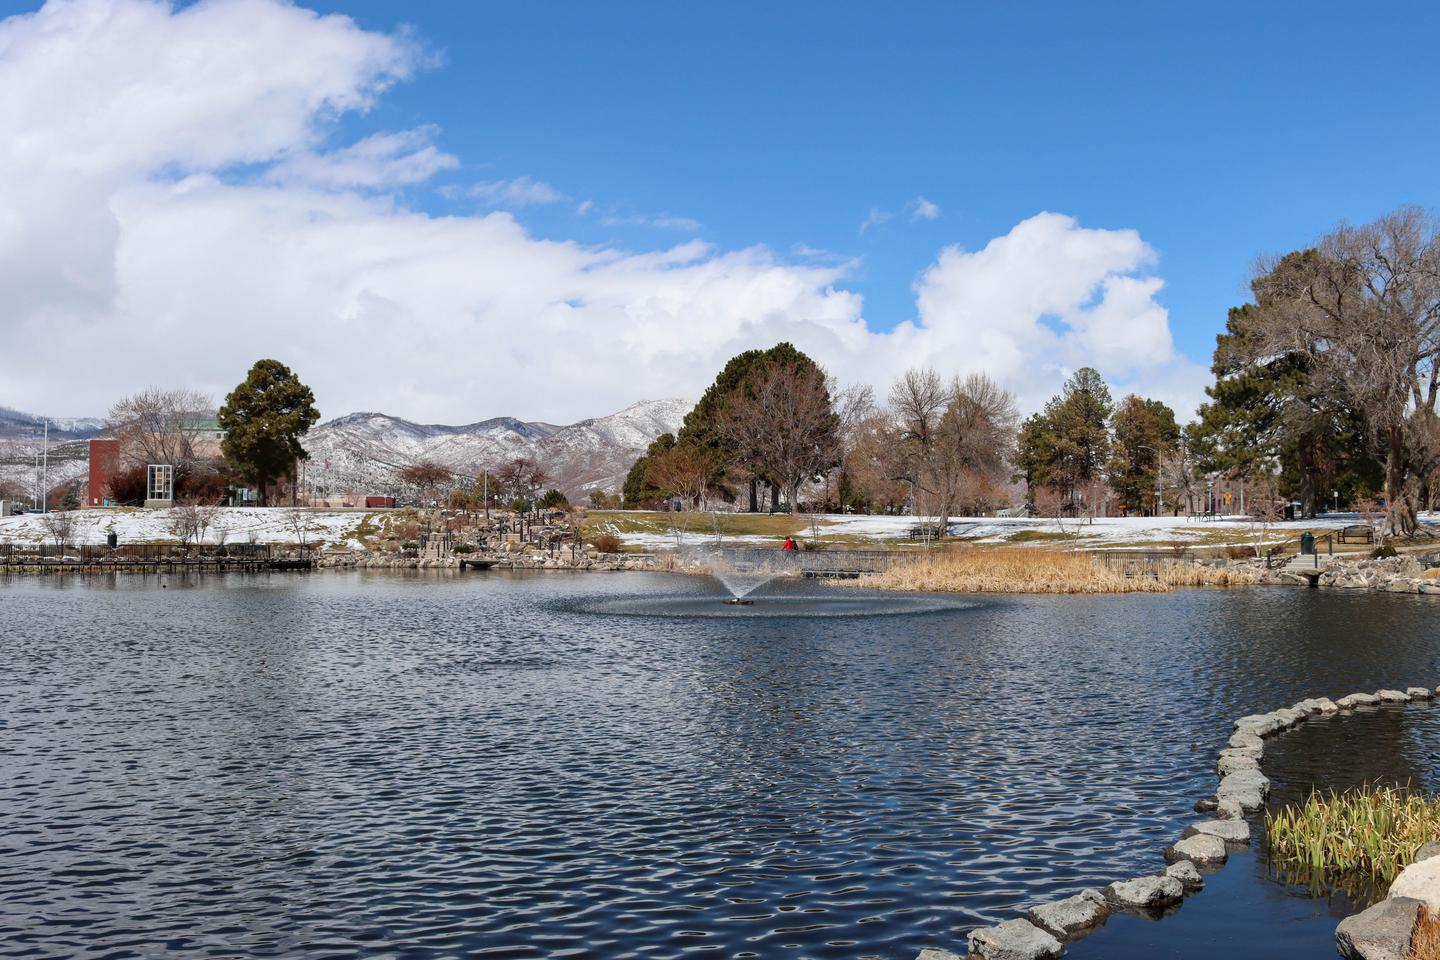 Ashley PondAshley Pond has been a central part of the Los Alamos community since the days before the Manhattan Project.